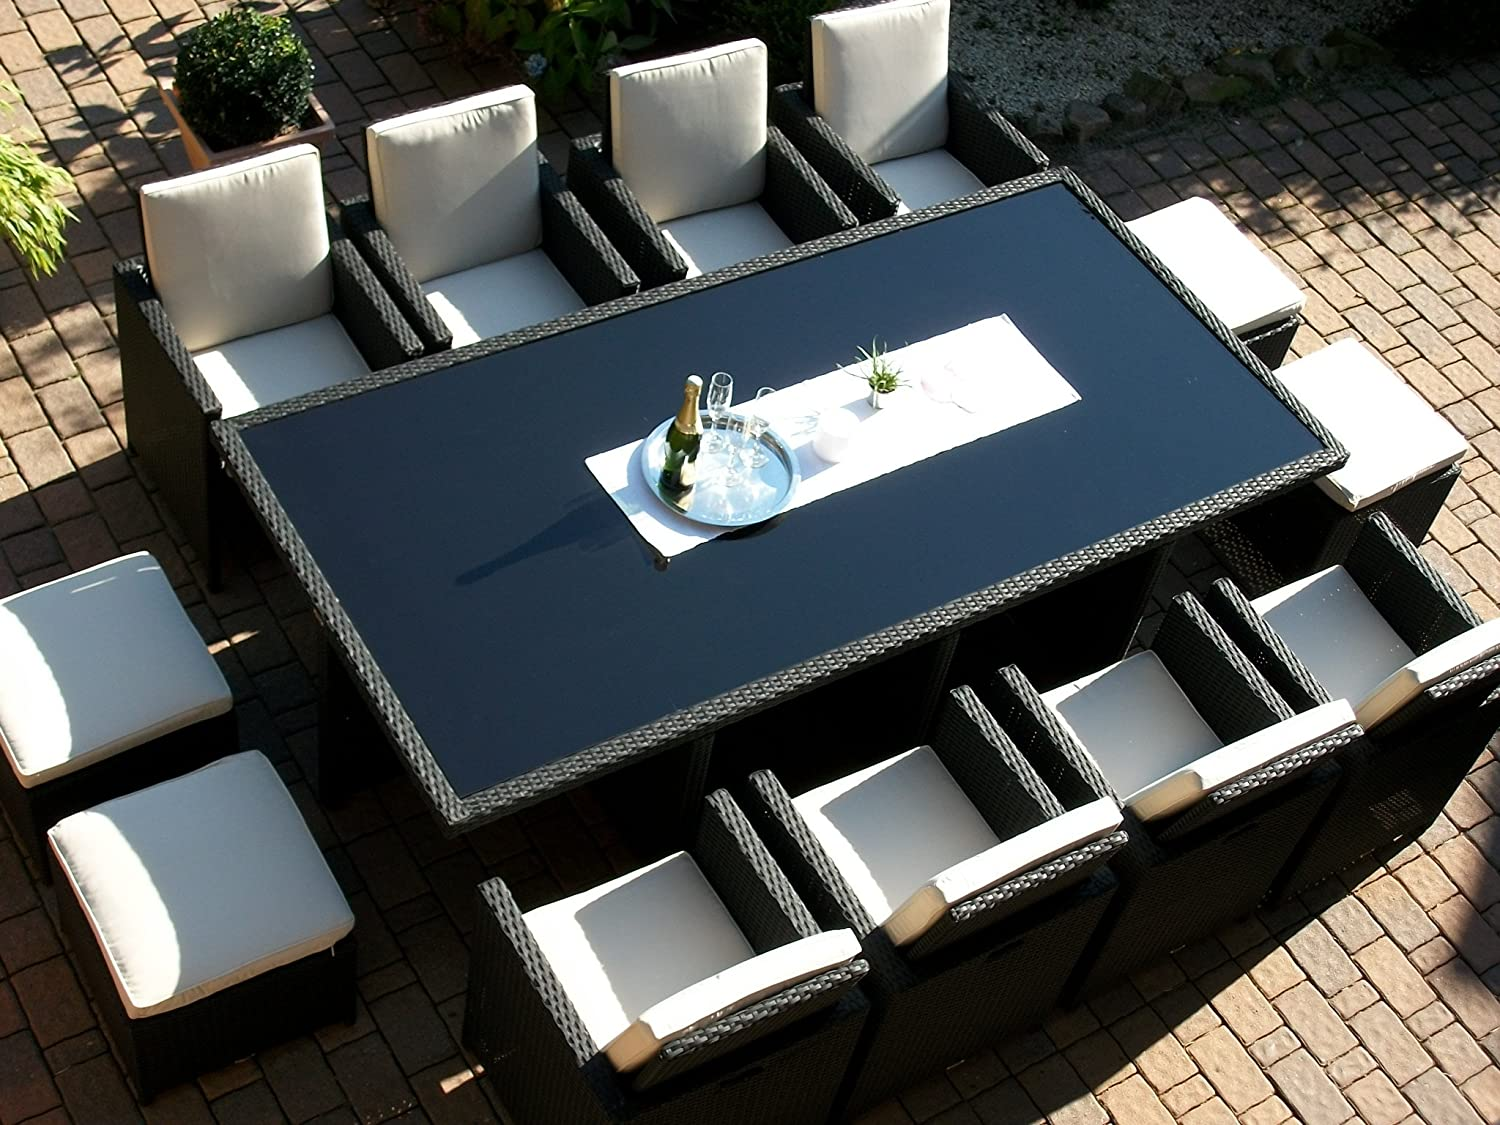 polyrattan rattan geflecht garten sitzgruppe toscana xxl. Black Bedroom Furniture Sets. Home Design Ideas